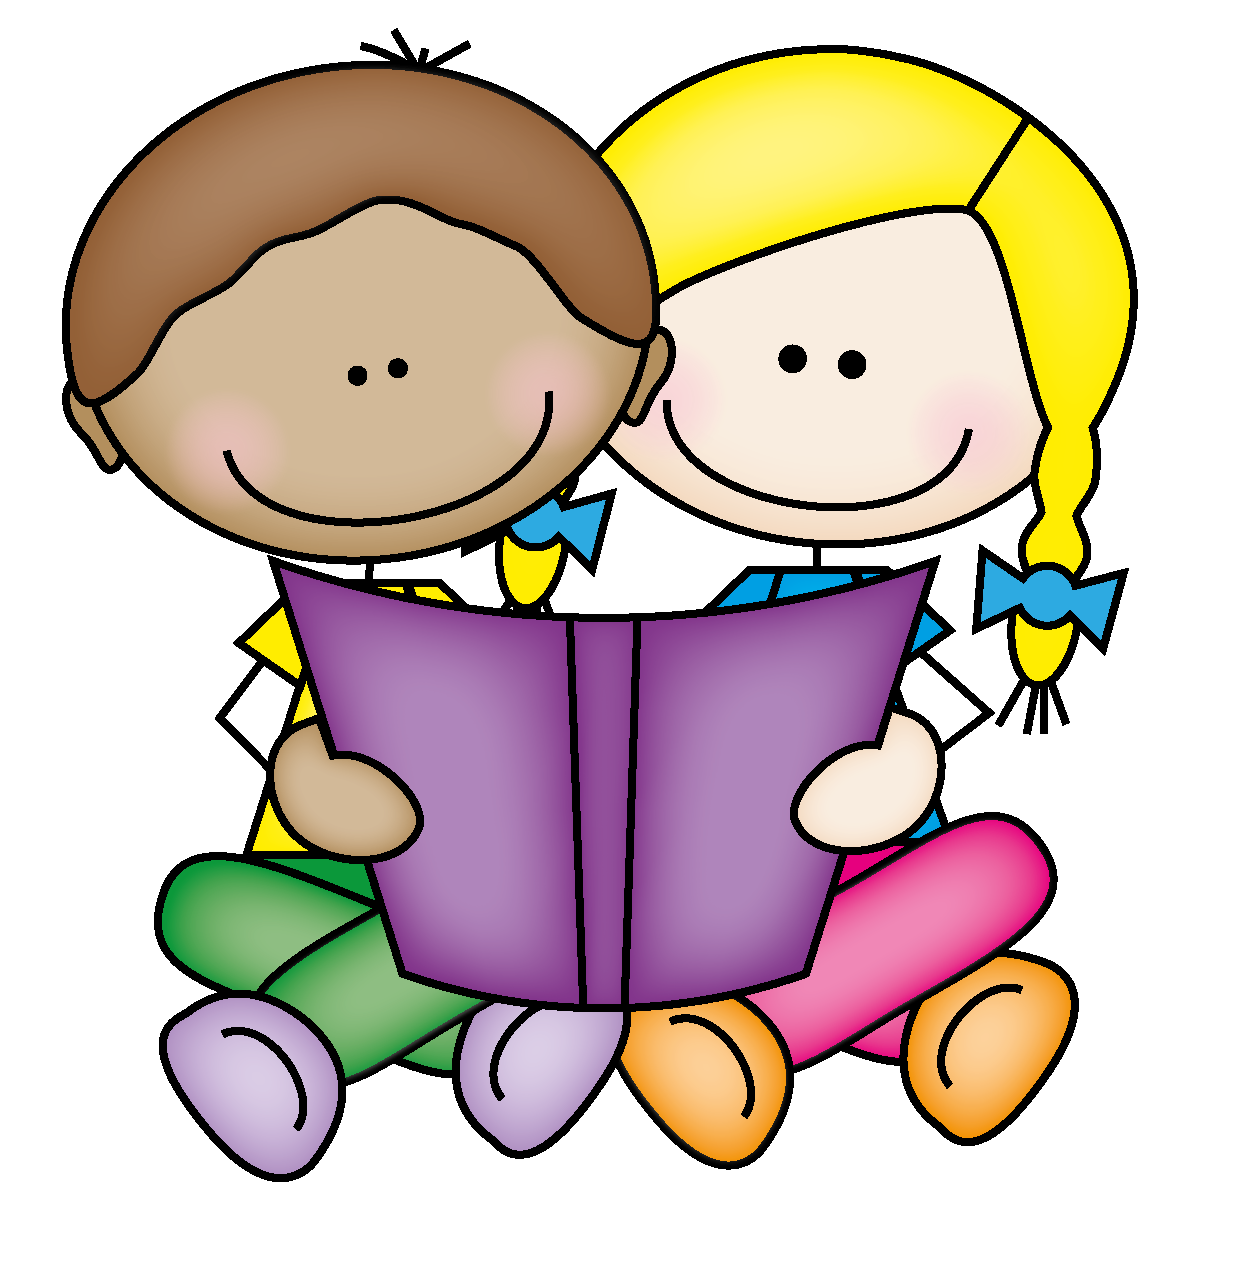 Baby reading book clipart svg library download Child Reading Clipart at GetDrawings.com | Free for personal use ... svg library download